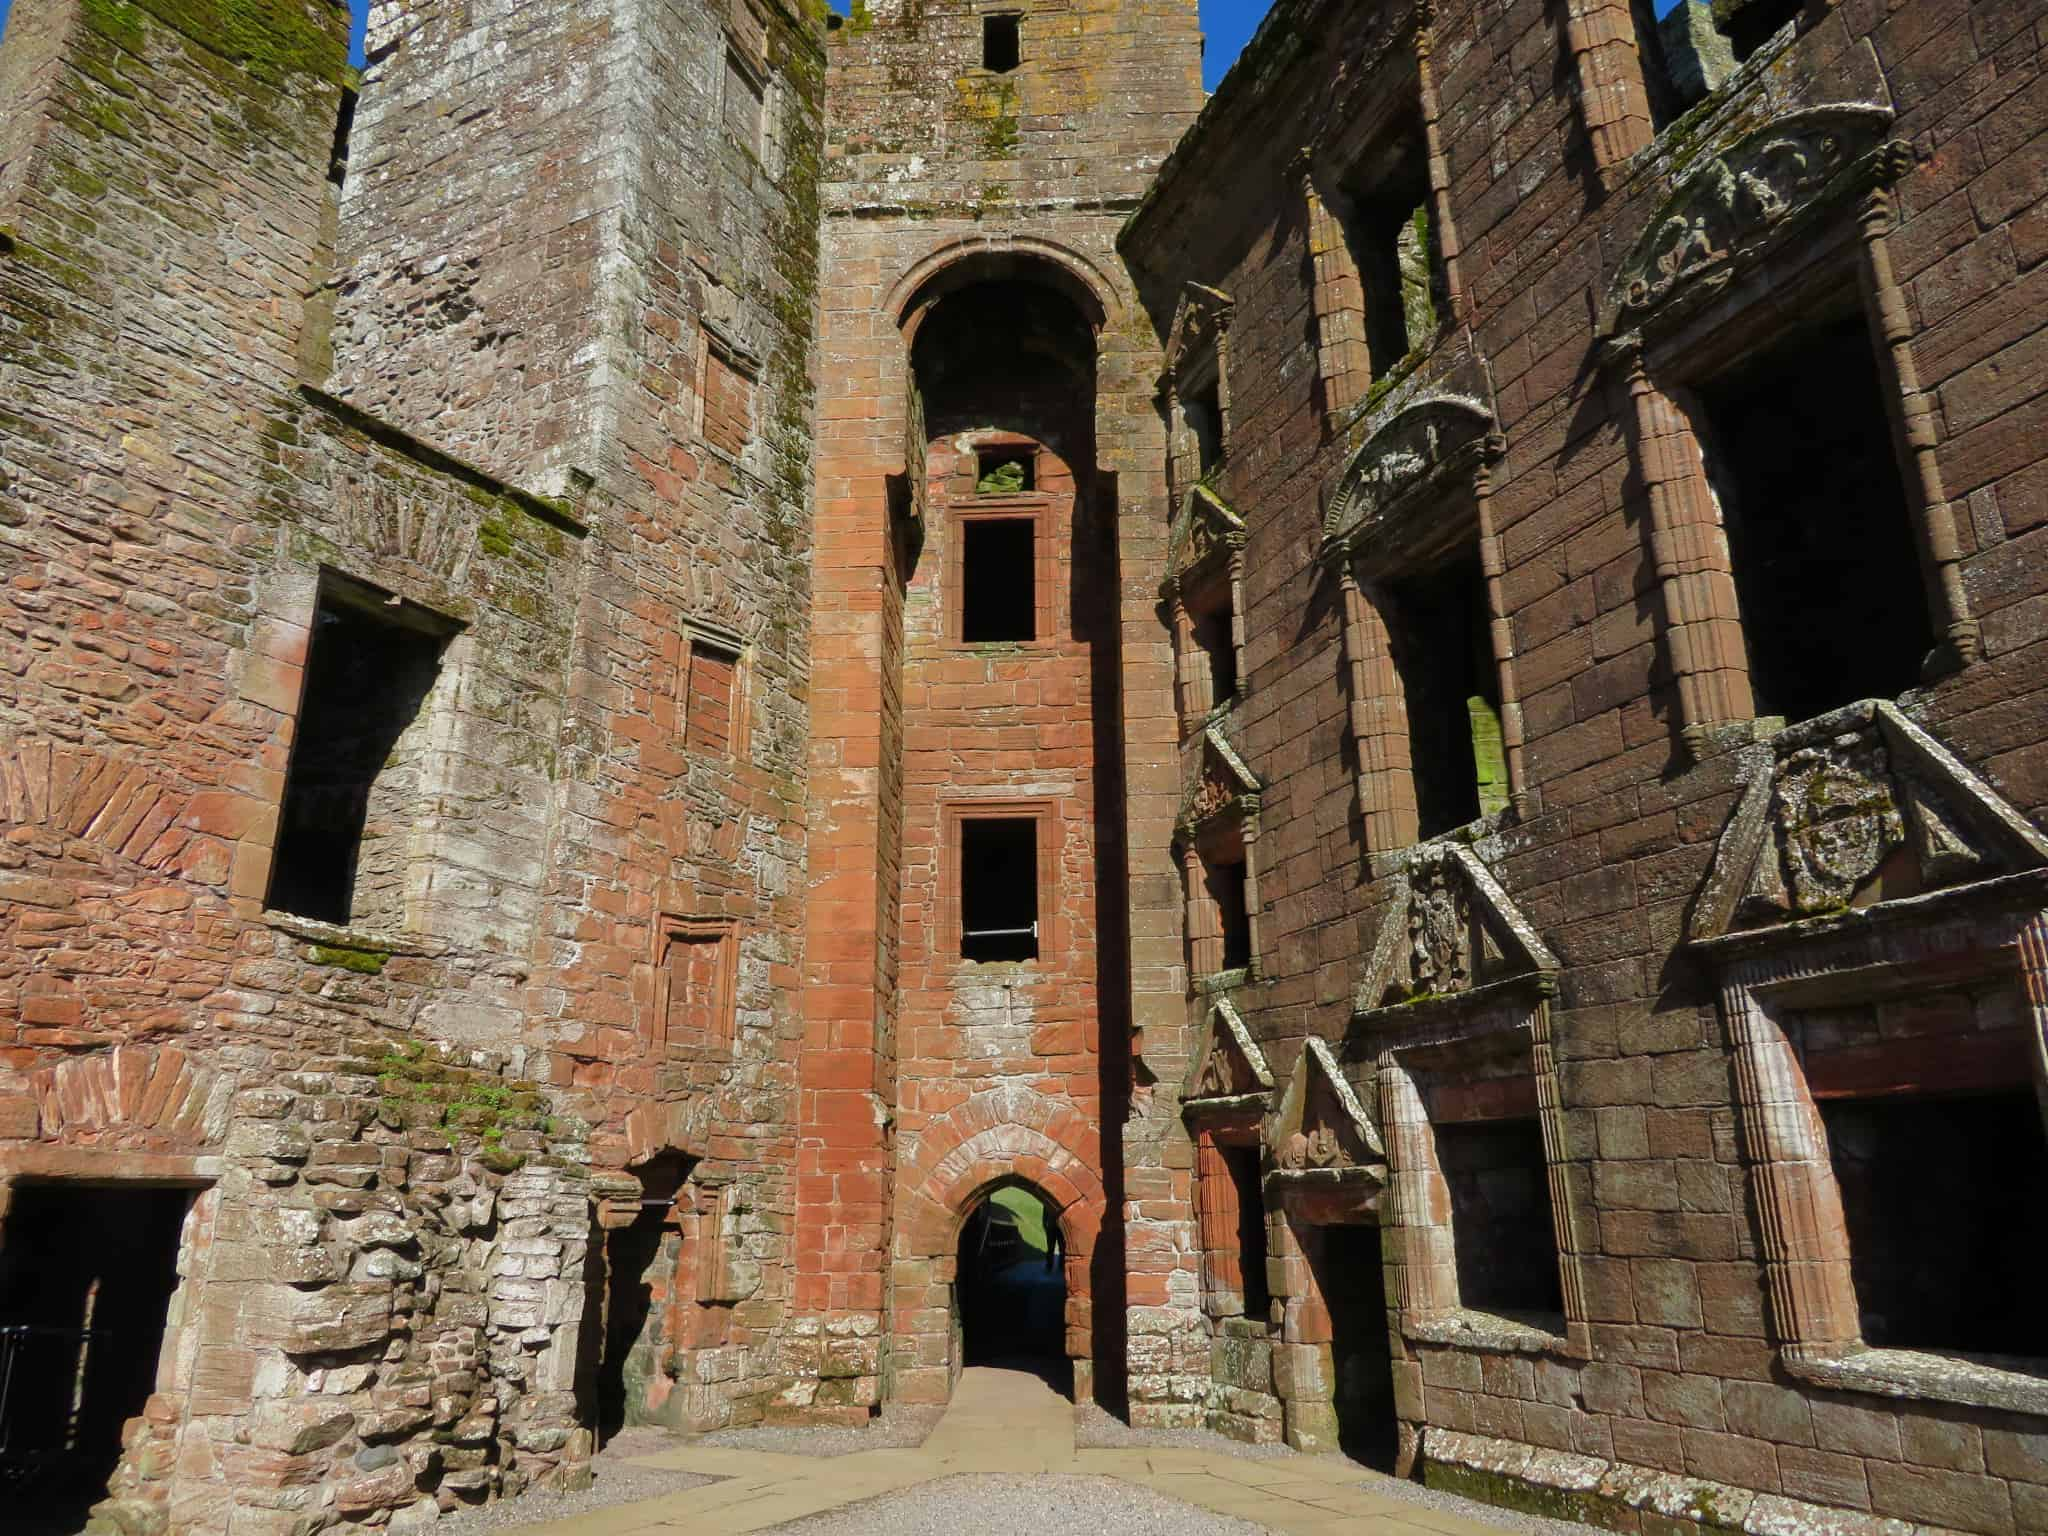 Caerlaverock Castle entrance and family lodging quarter